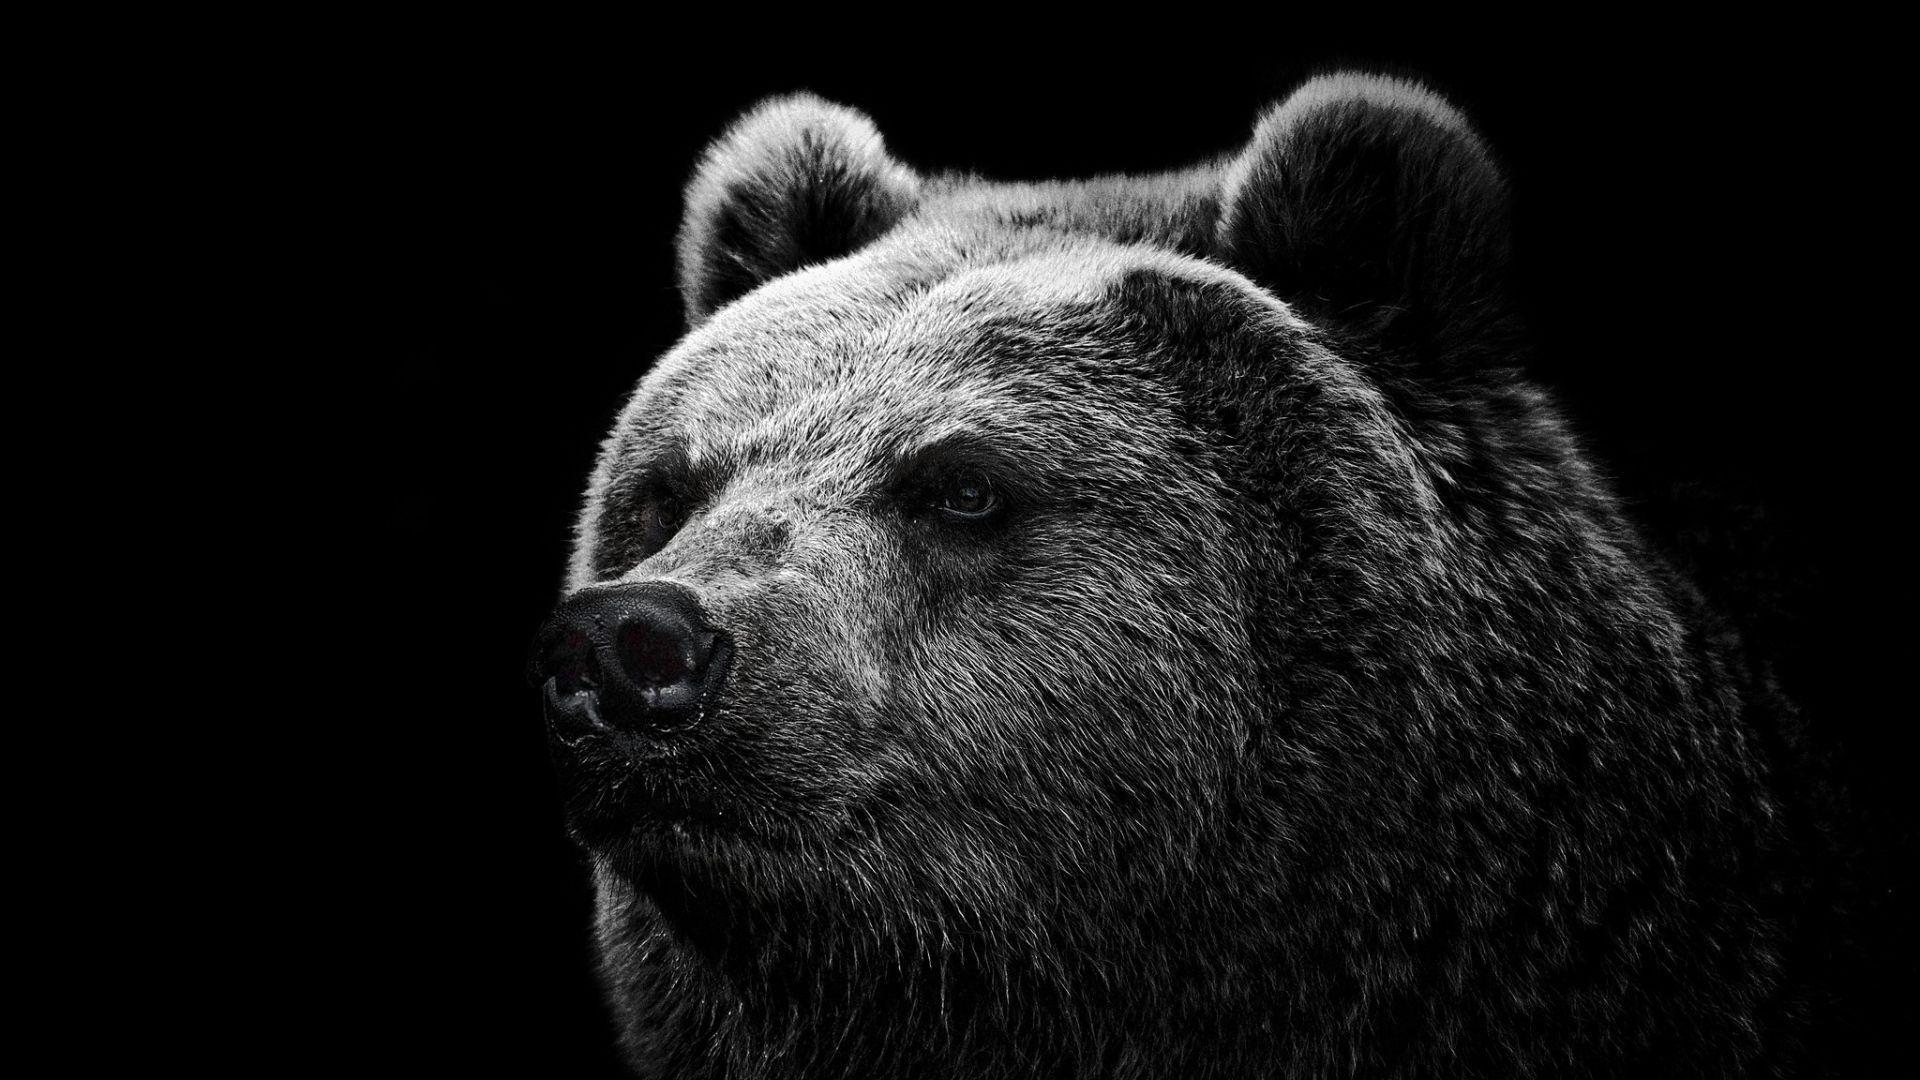 Hd Wallpapers Grizzly Bear Wallpaper Wild Big Grizzly 1280 X 960 ...